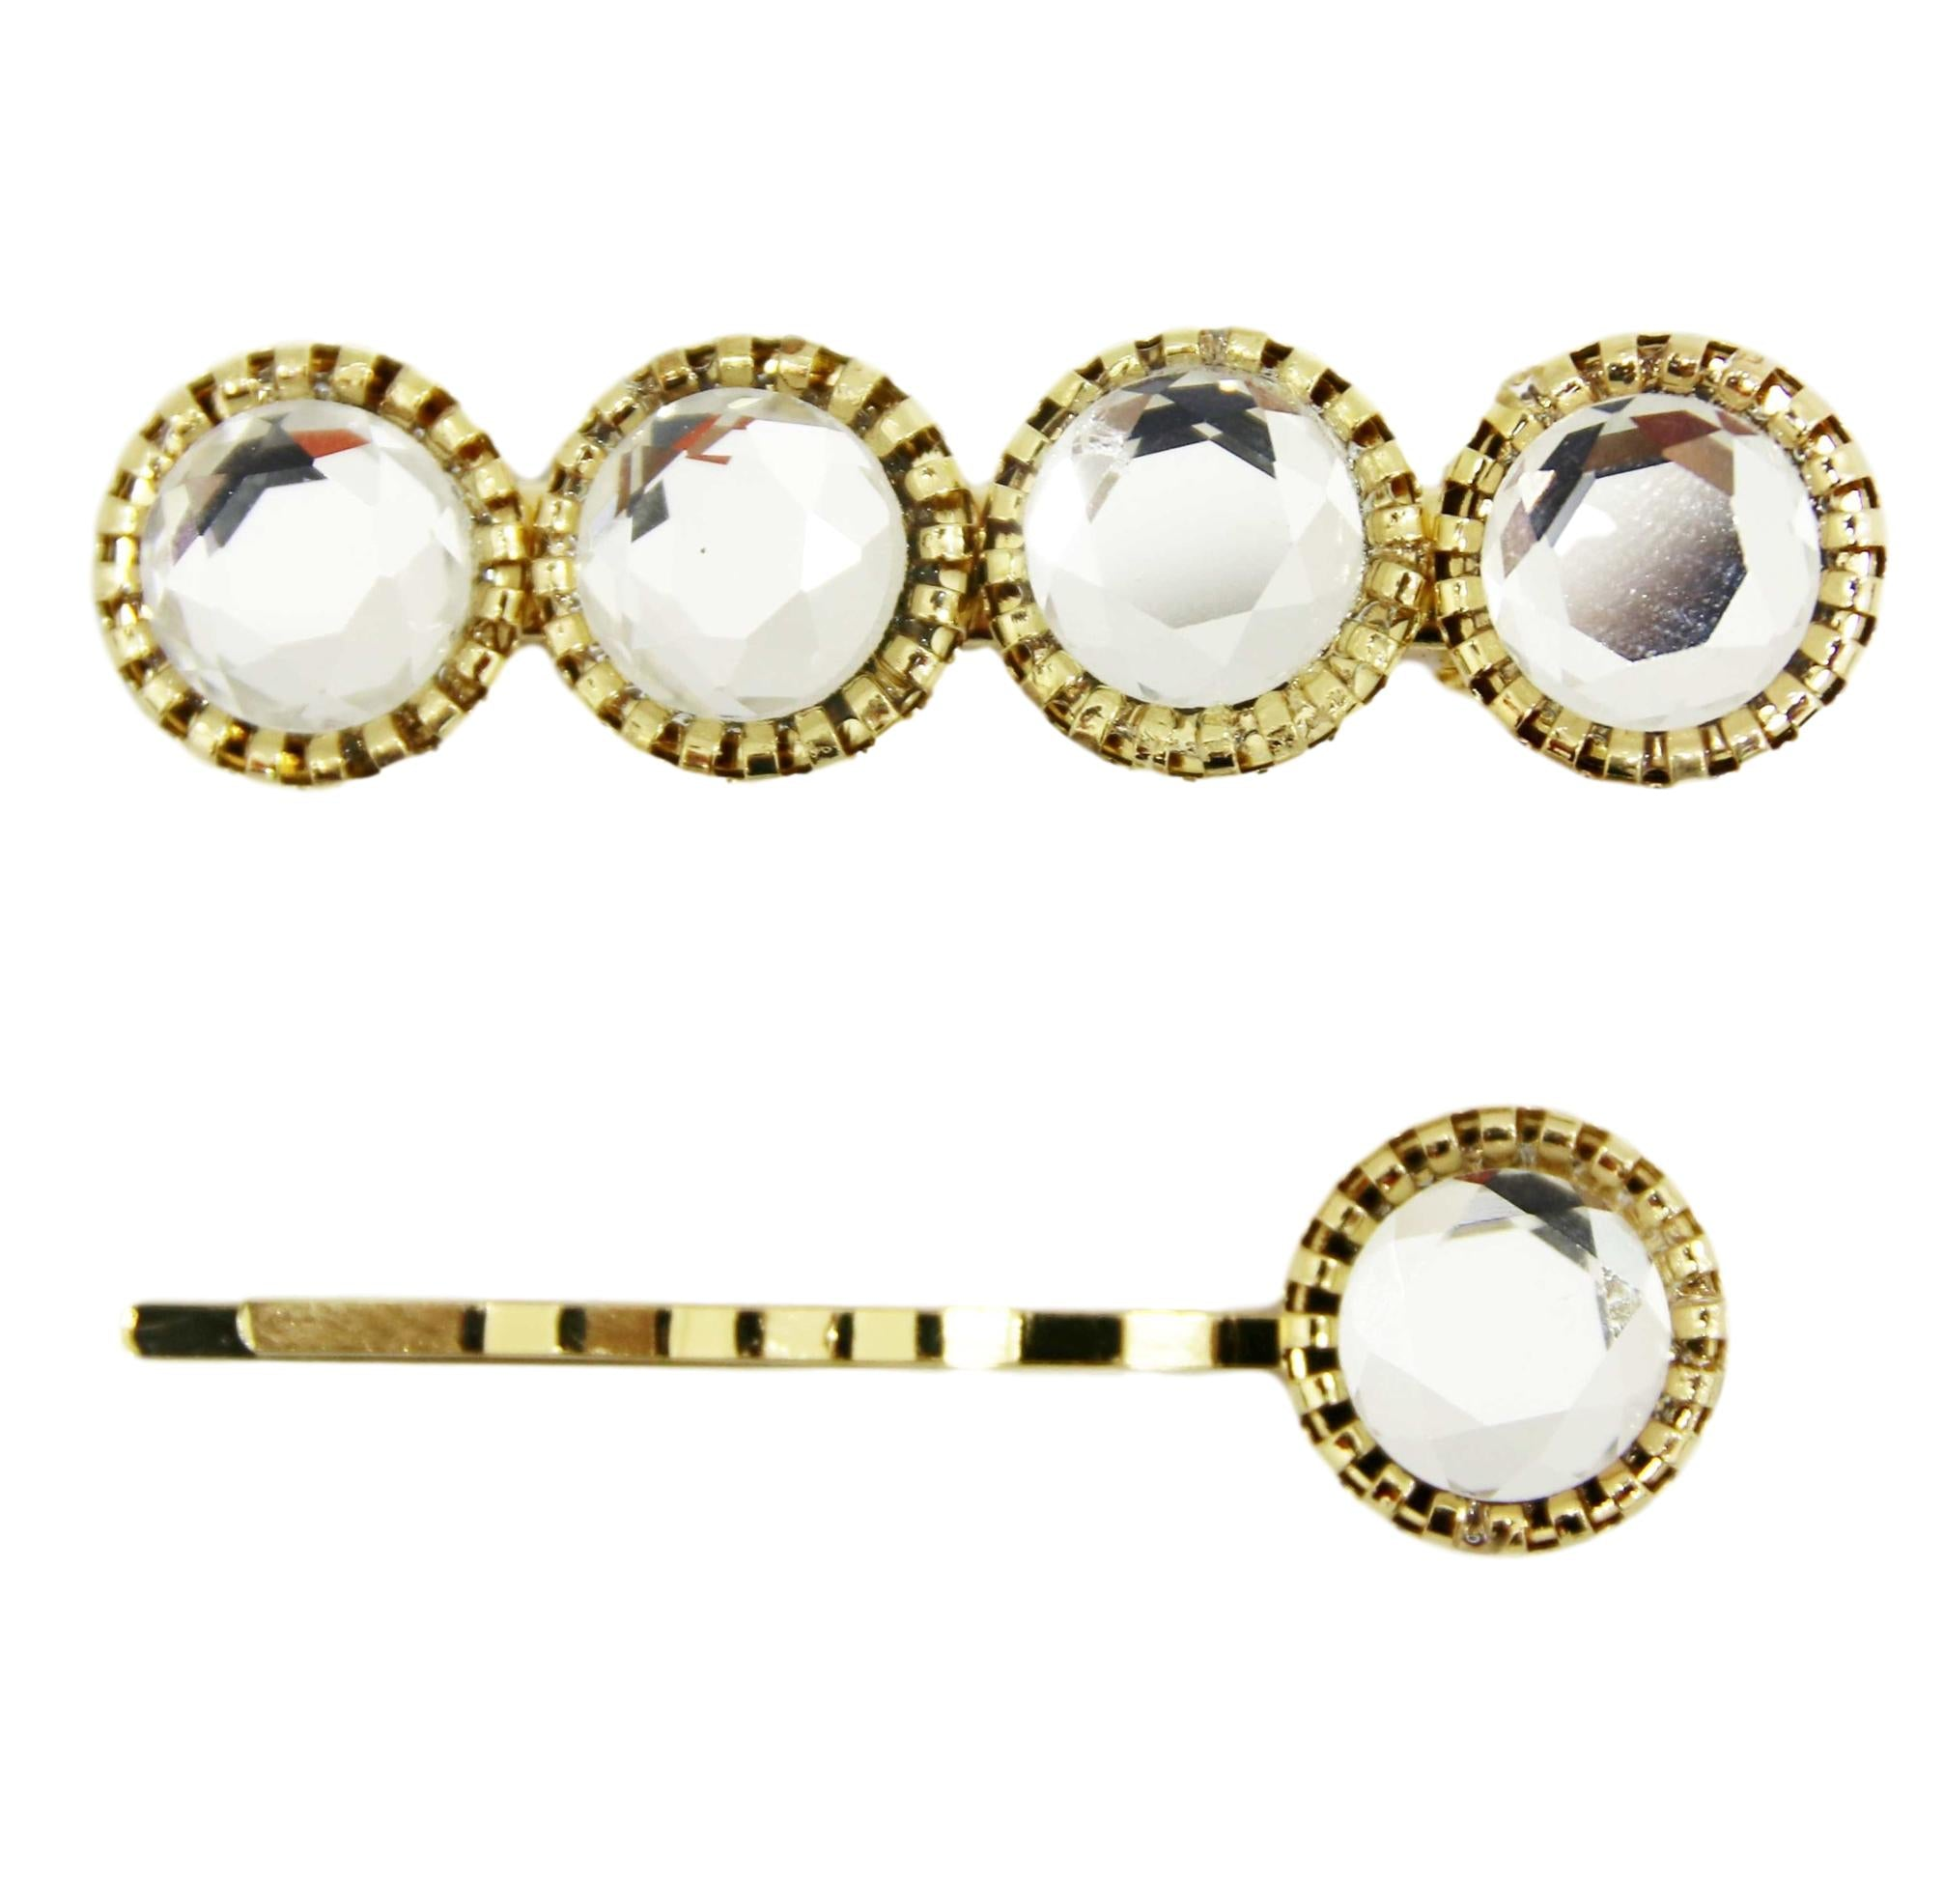 2 pc gem hair slide